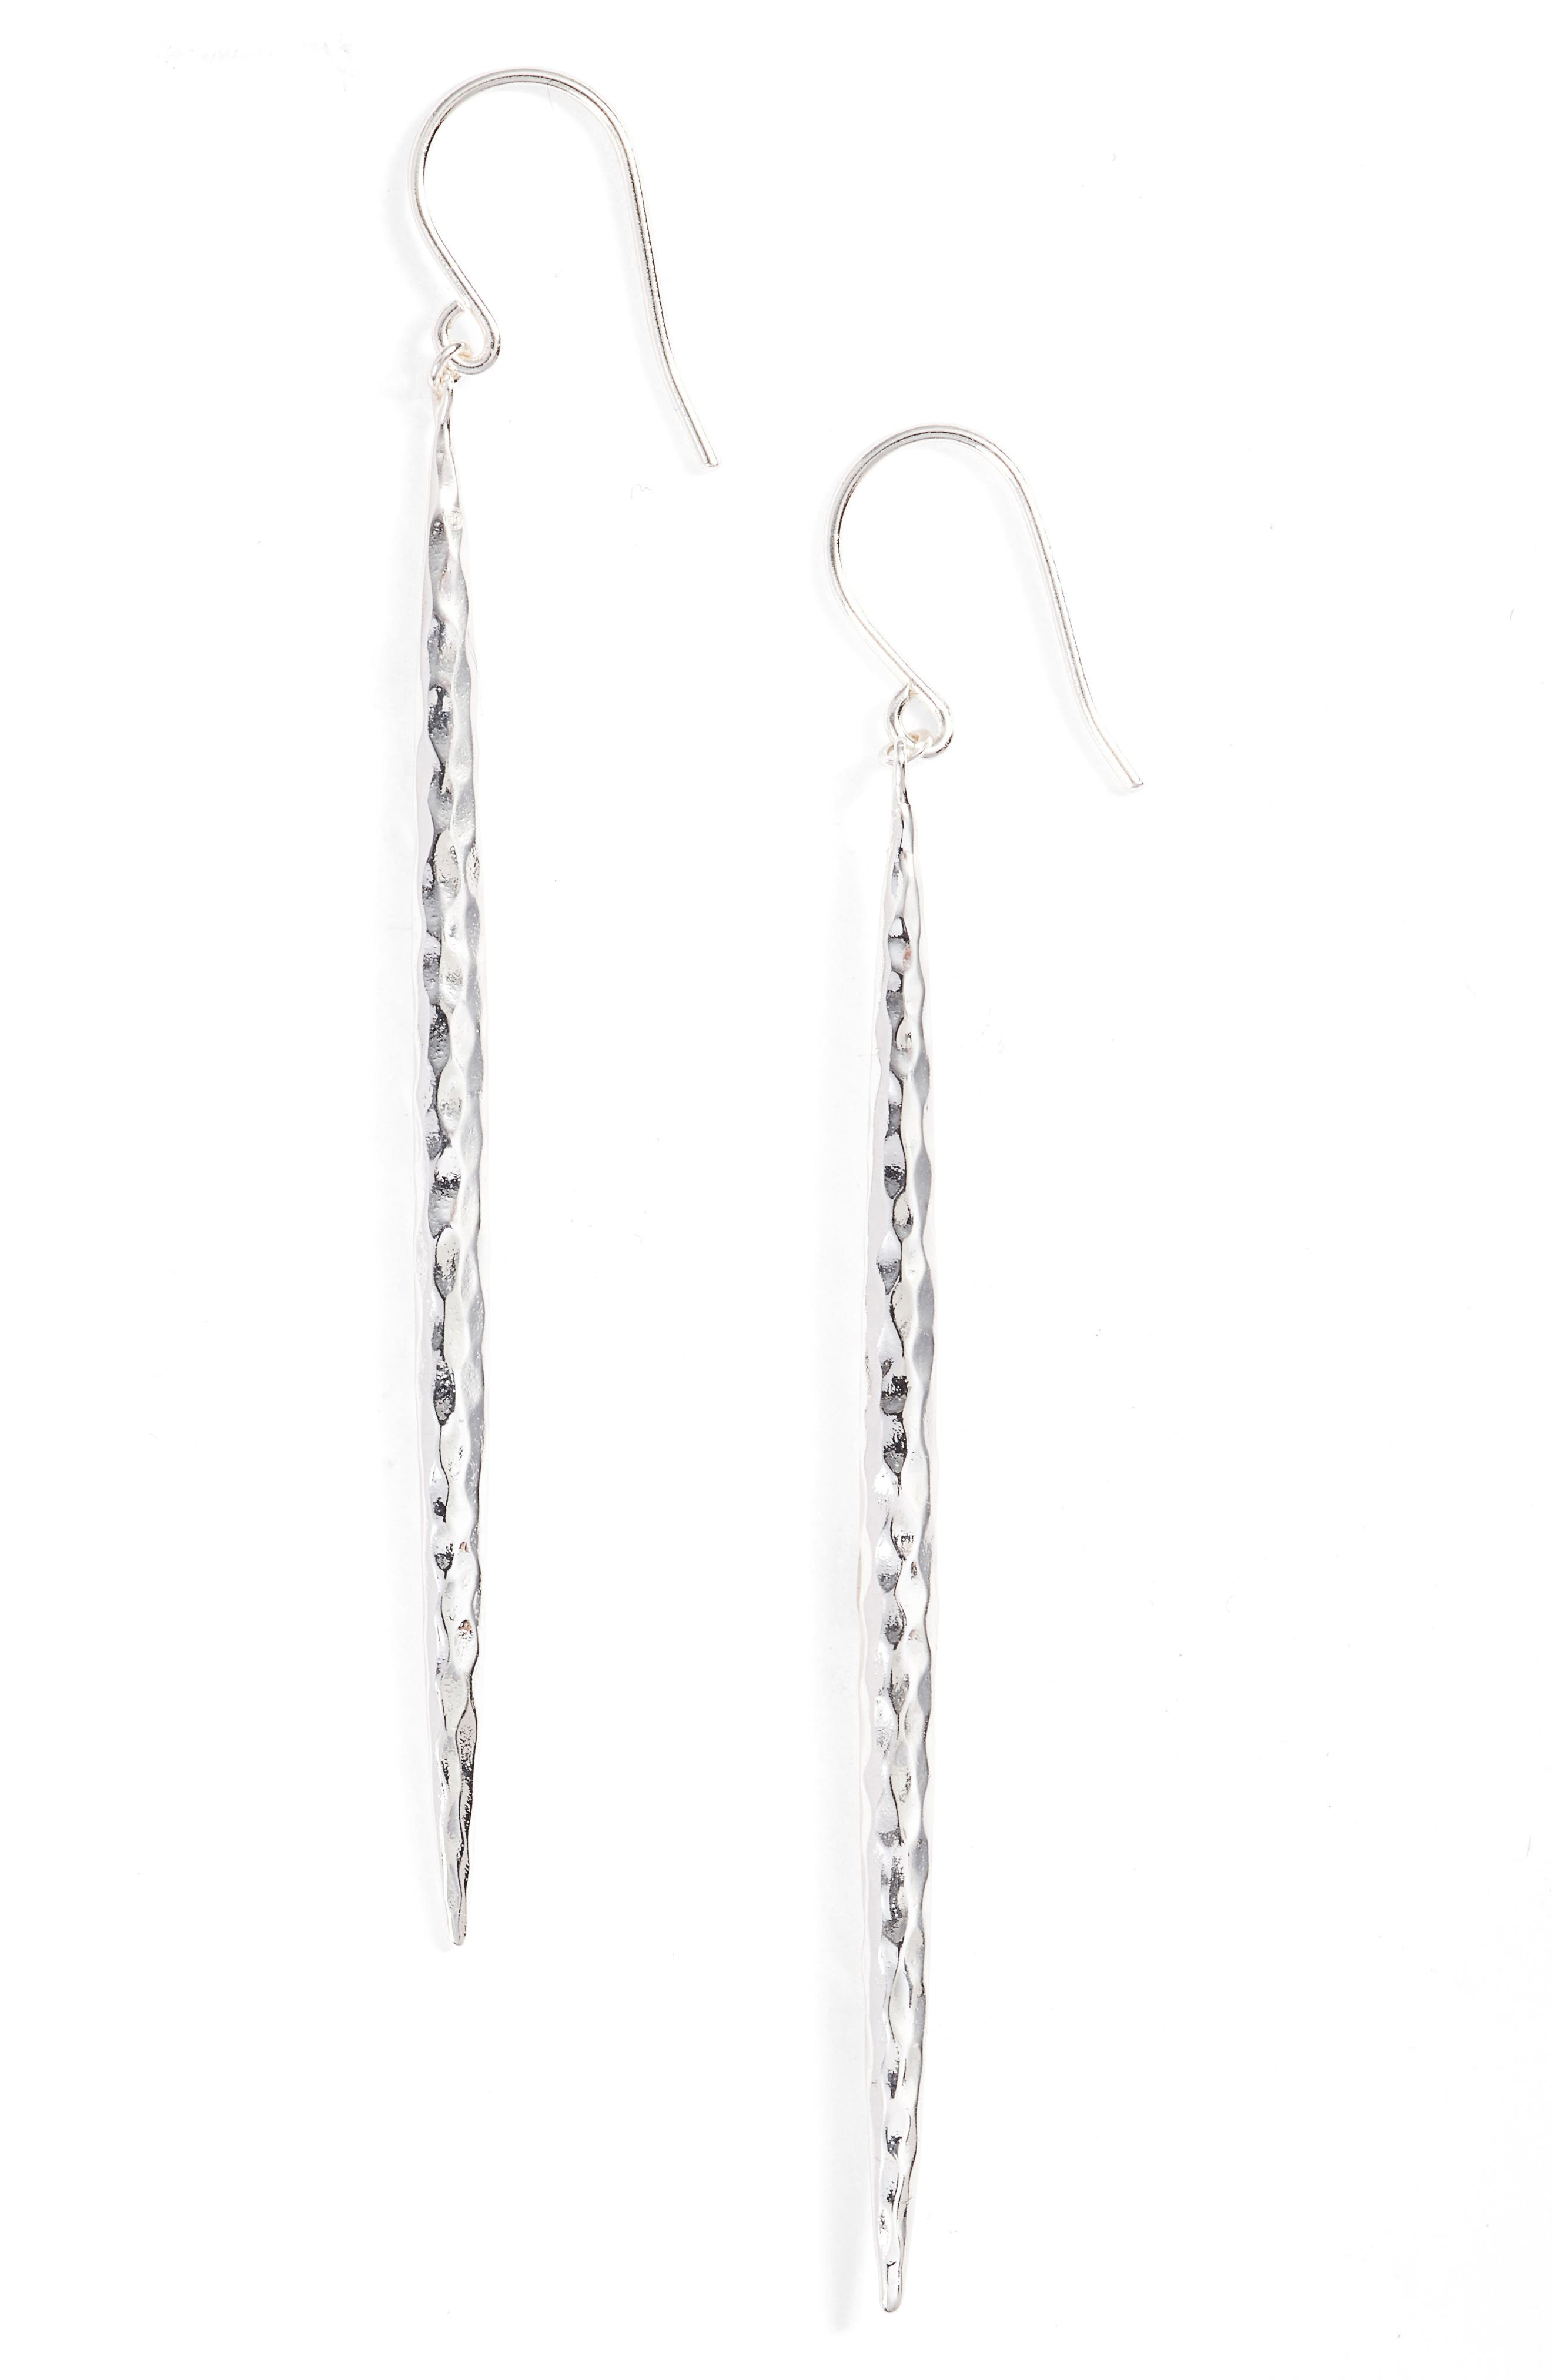 gorjana Nora Linear Earrings